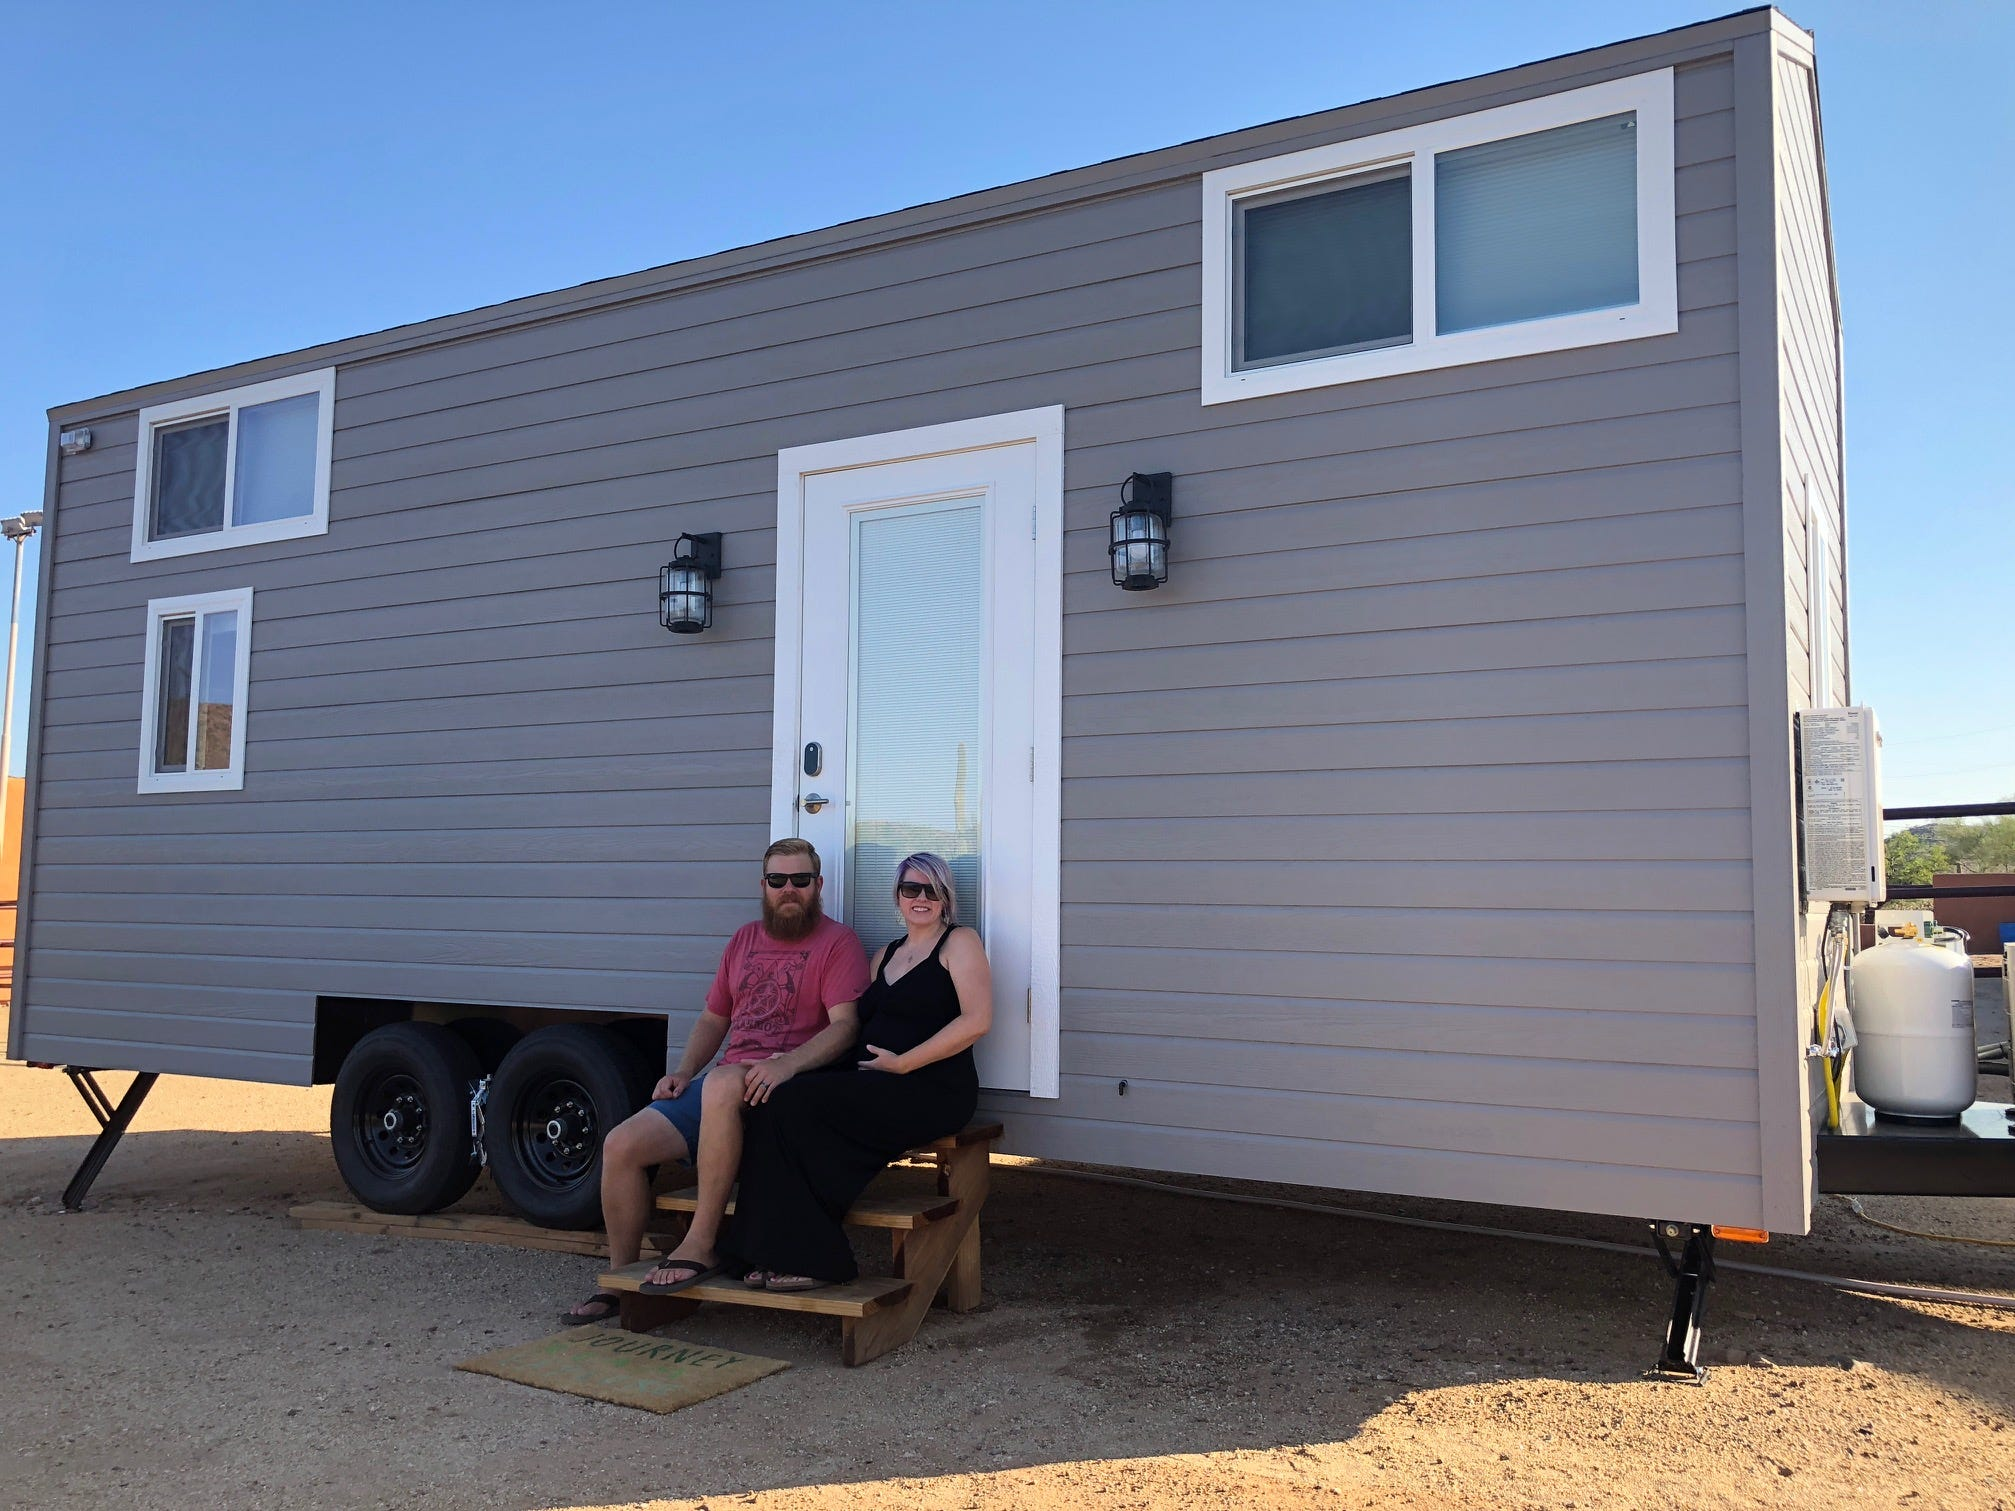 Justin and Rachel Beers in front of their tiny home.